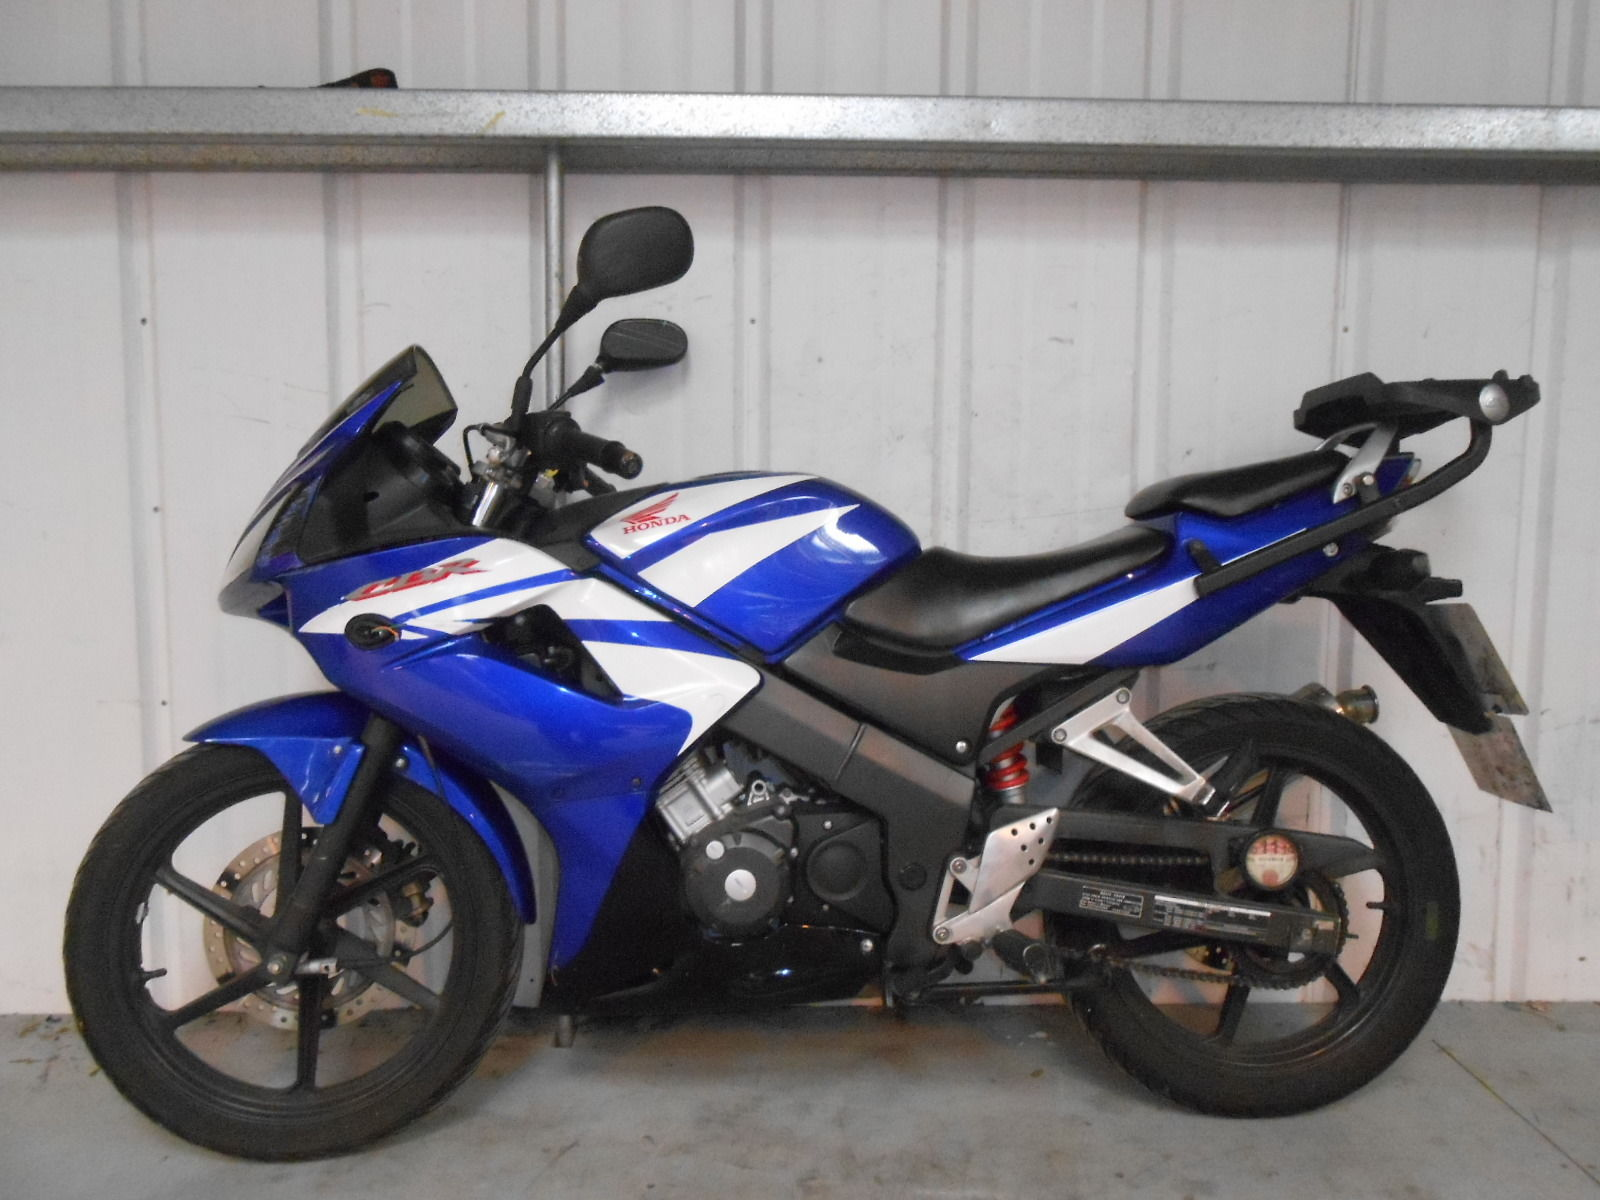 2007 honda cbr 125 rw 7 blue damaged spares or repair no reserve 6468. Black Bedroom Furniture Sets. Home Design Ideas